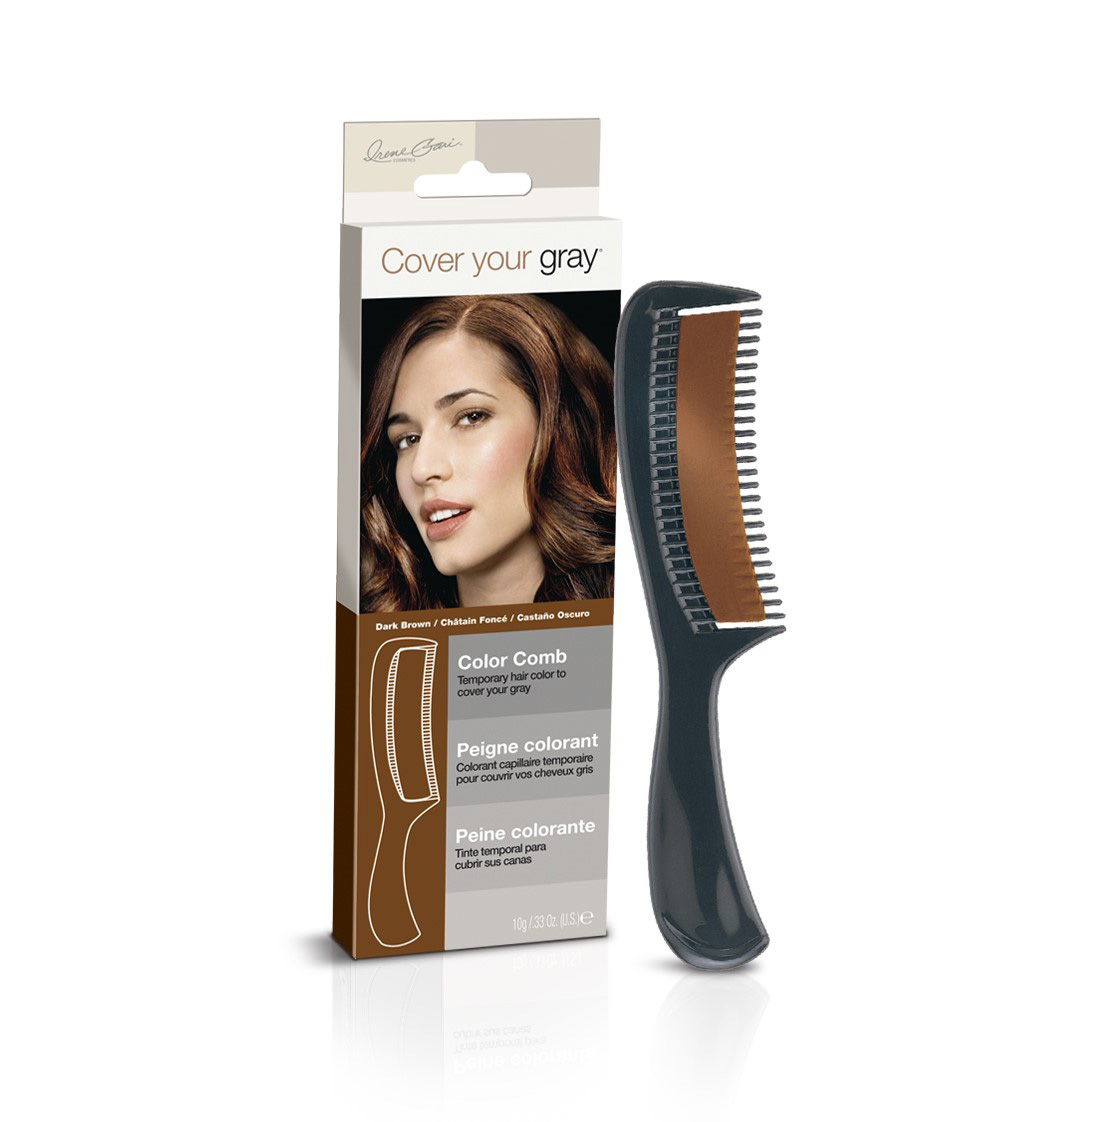 Dark brown color comb - instantly covers gray hair